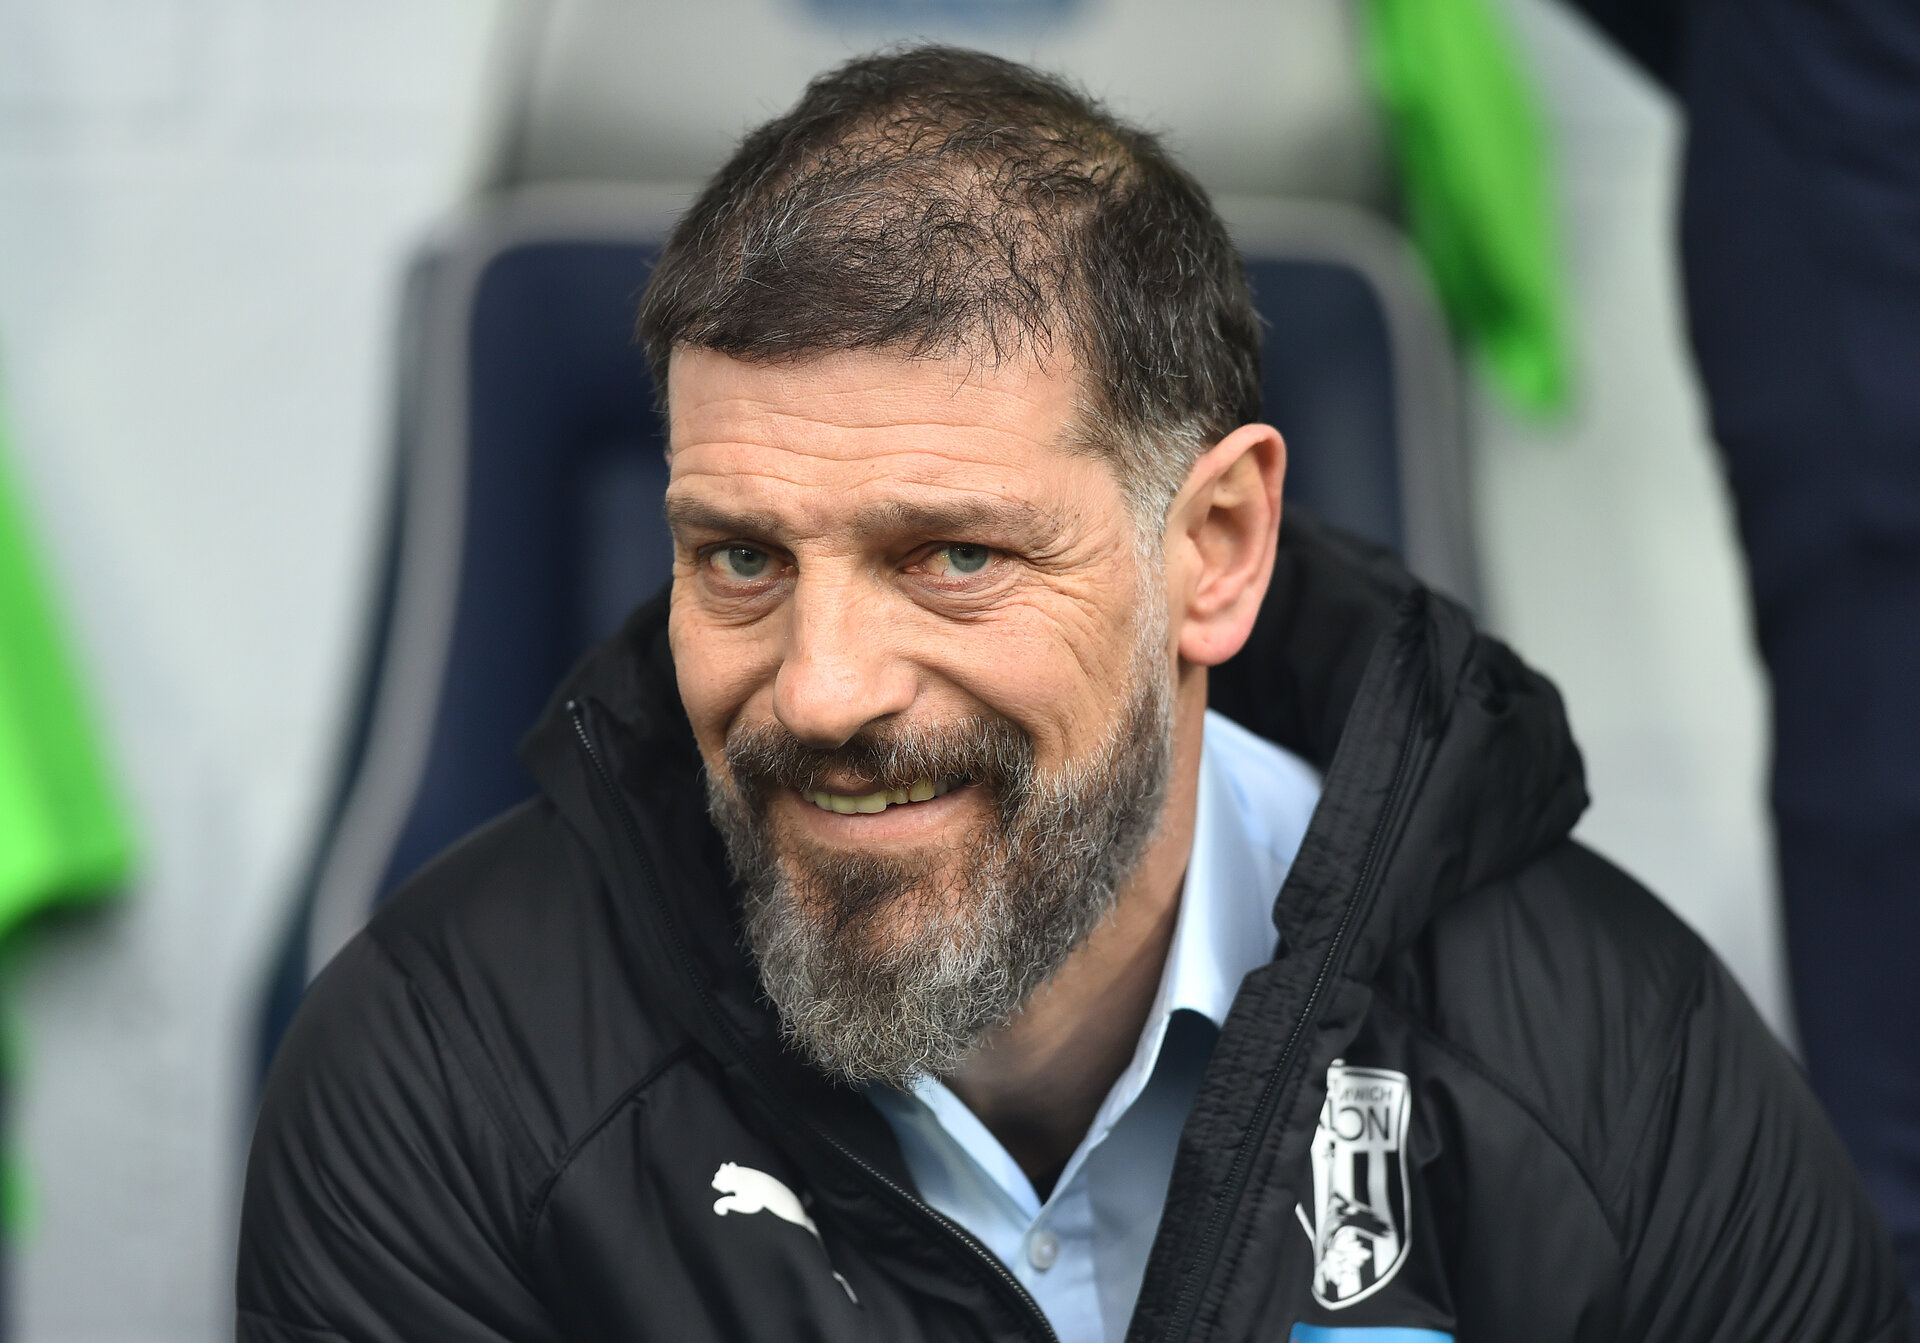 WEST BROMWICH, ENGLAND - FEBRUARY 15:   Slaven Bilic, Manager of West Bromwich Albion  looks on before the Sky Bet Championship match between West Bromwich Albion and Nottingham Forest at The Hawthorns on February 15, 2020 in West Bromwich, England. (Photo by Nathan Stirk/Getty Images)